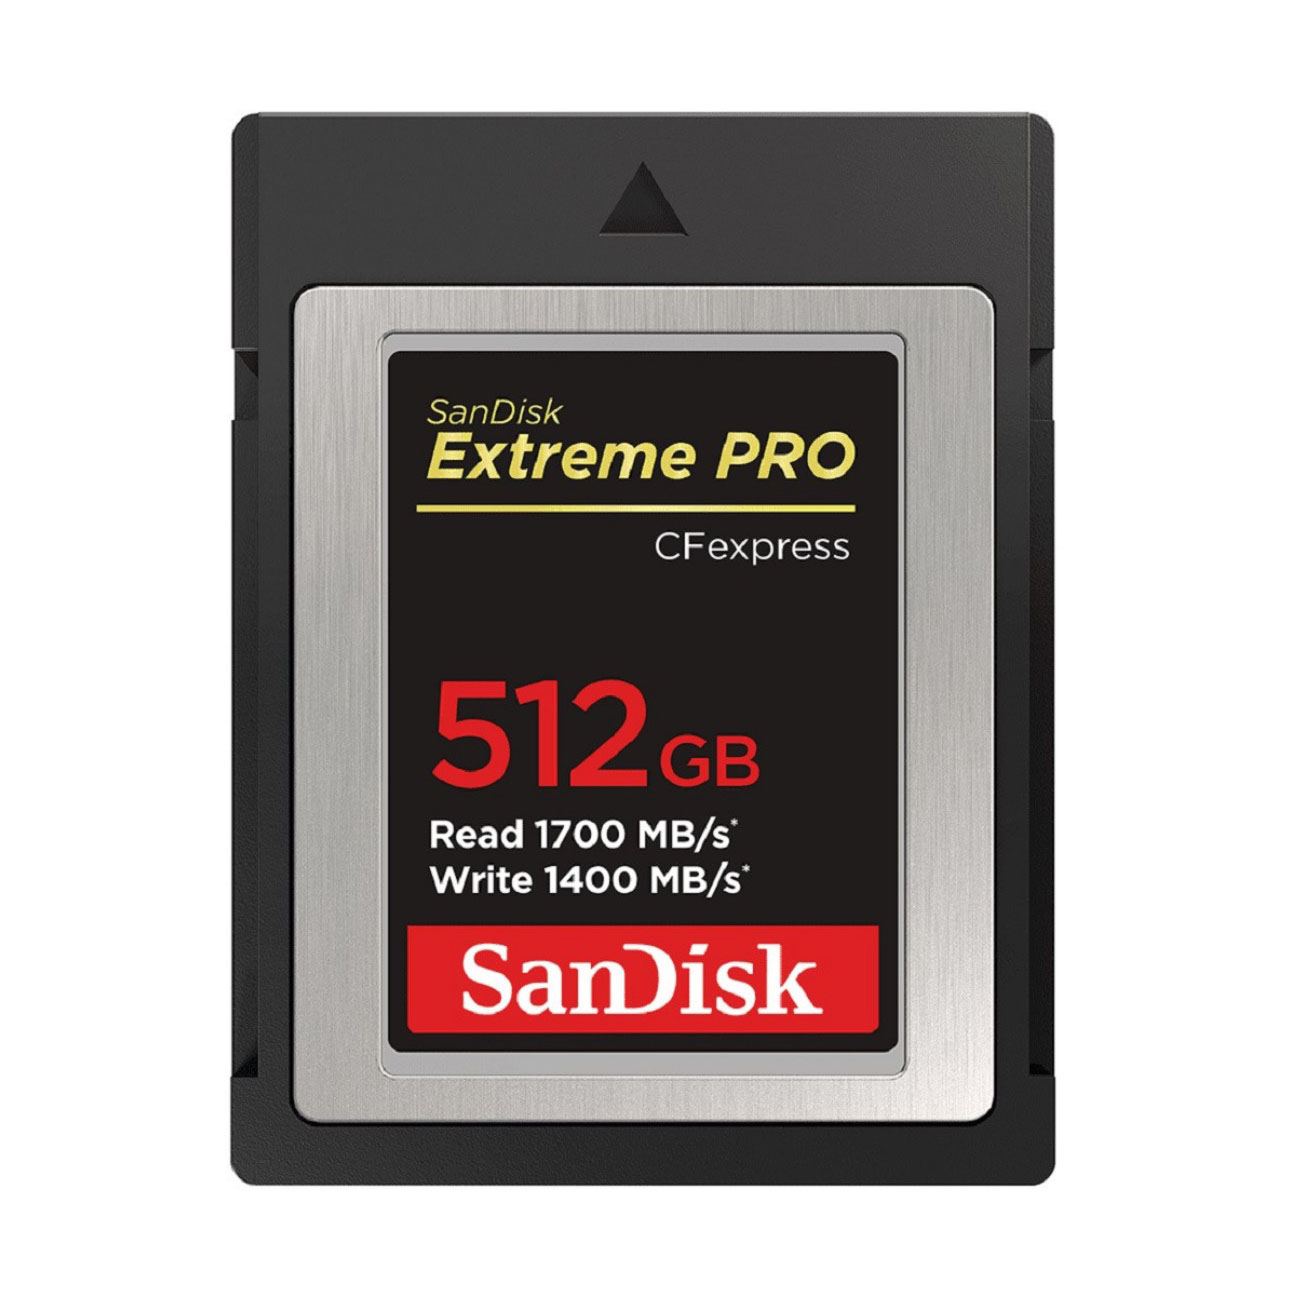 SanDisk 512 GB CFexpress Card